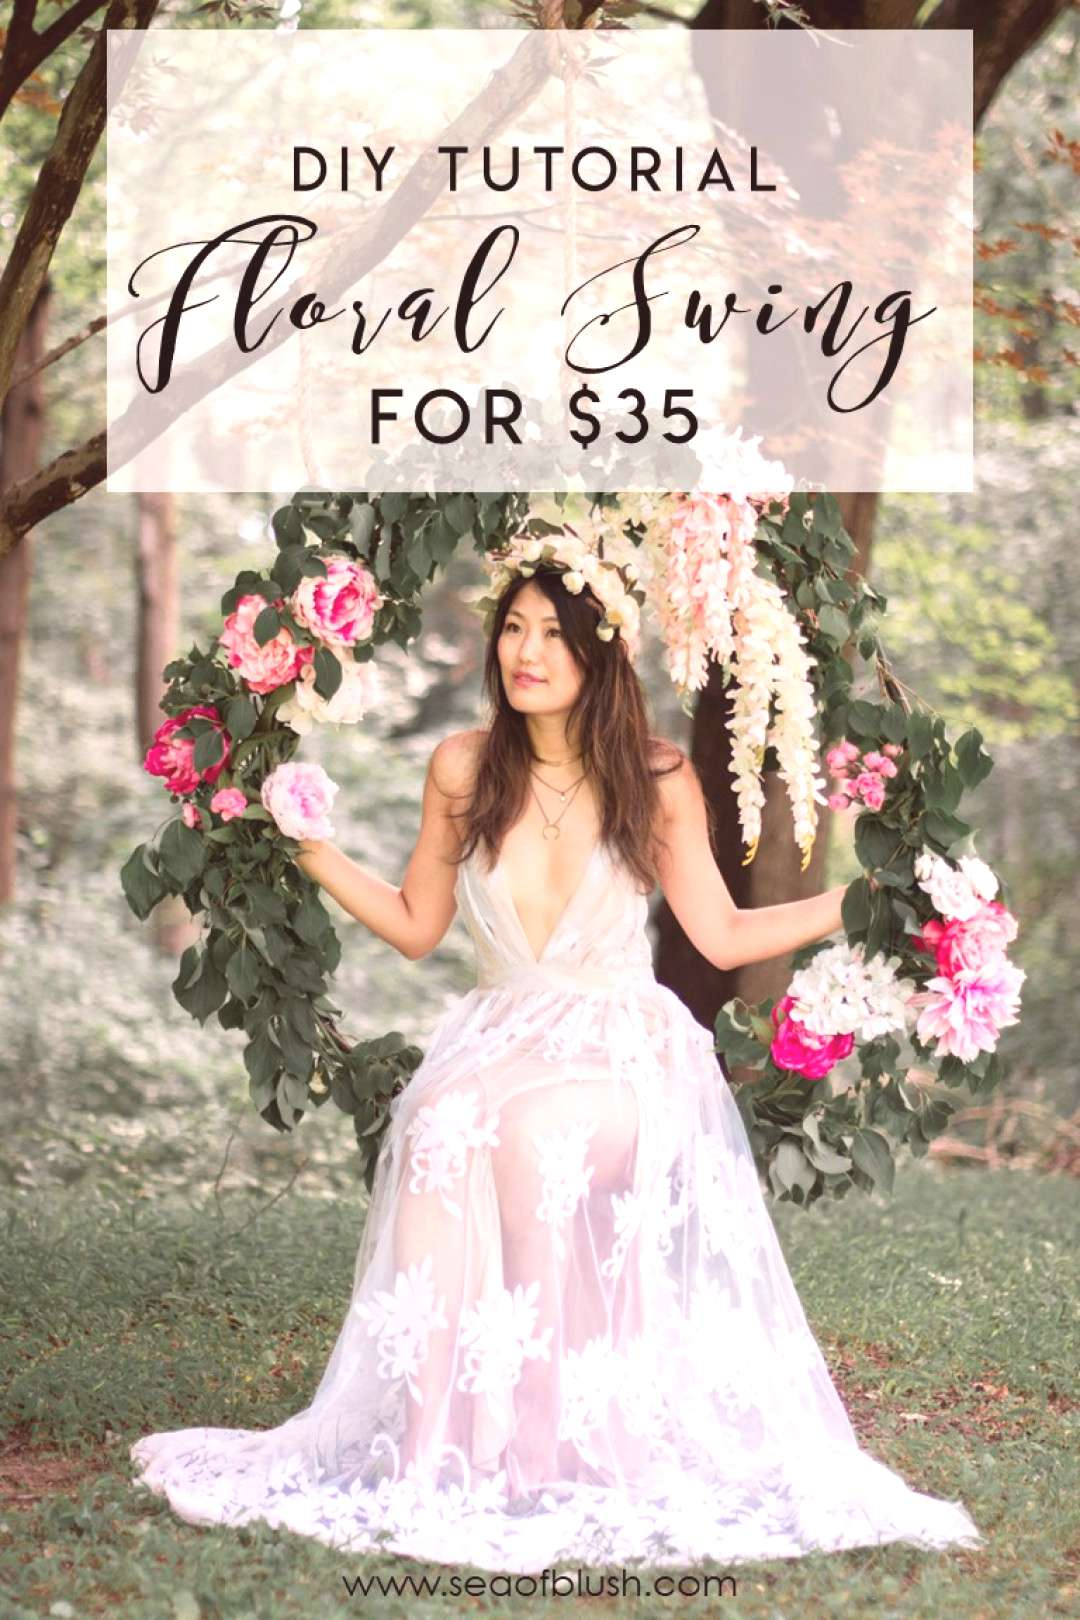 How to Build a Flower Swing for under $50 as a Photography Prop DIY. The perfect photo prop for we